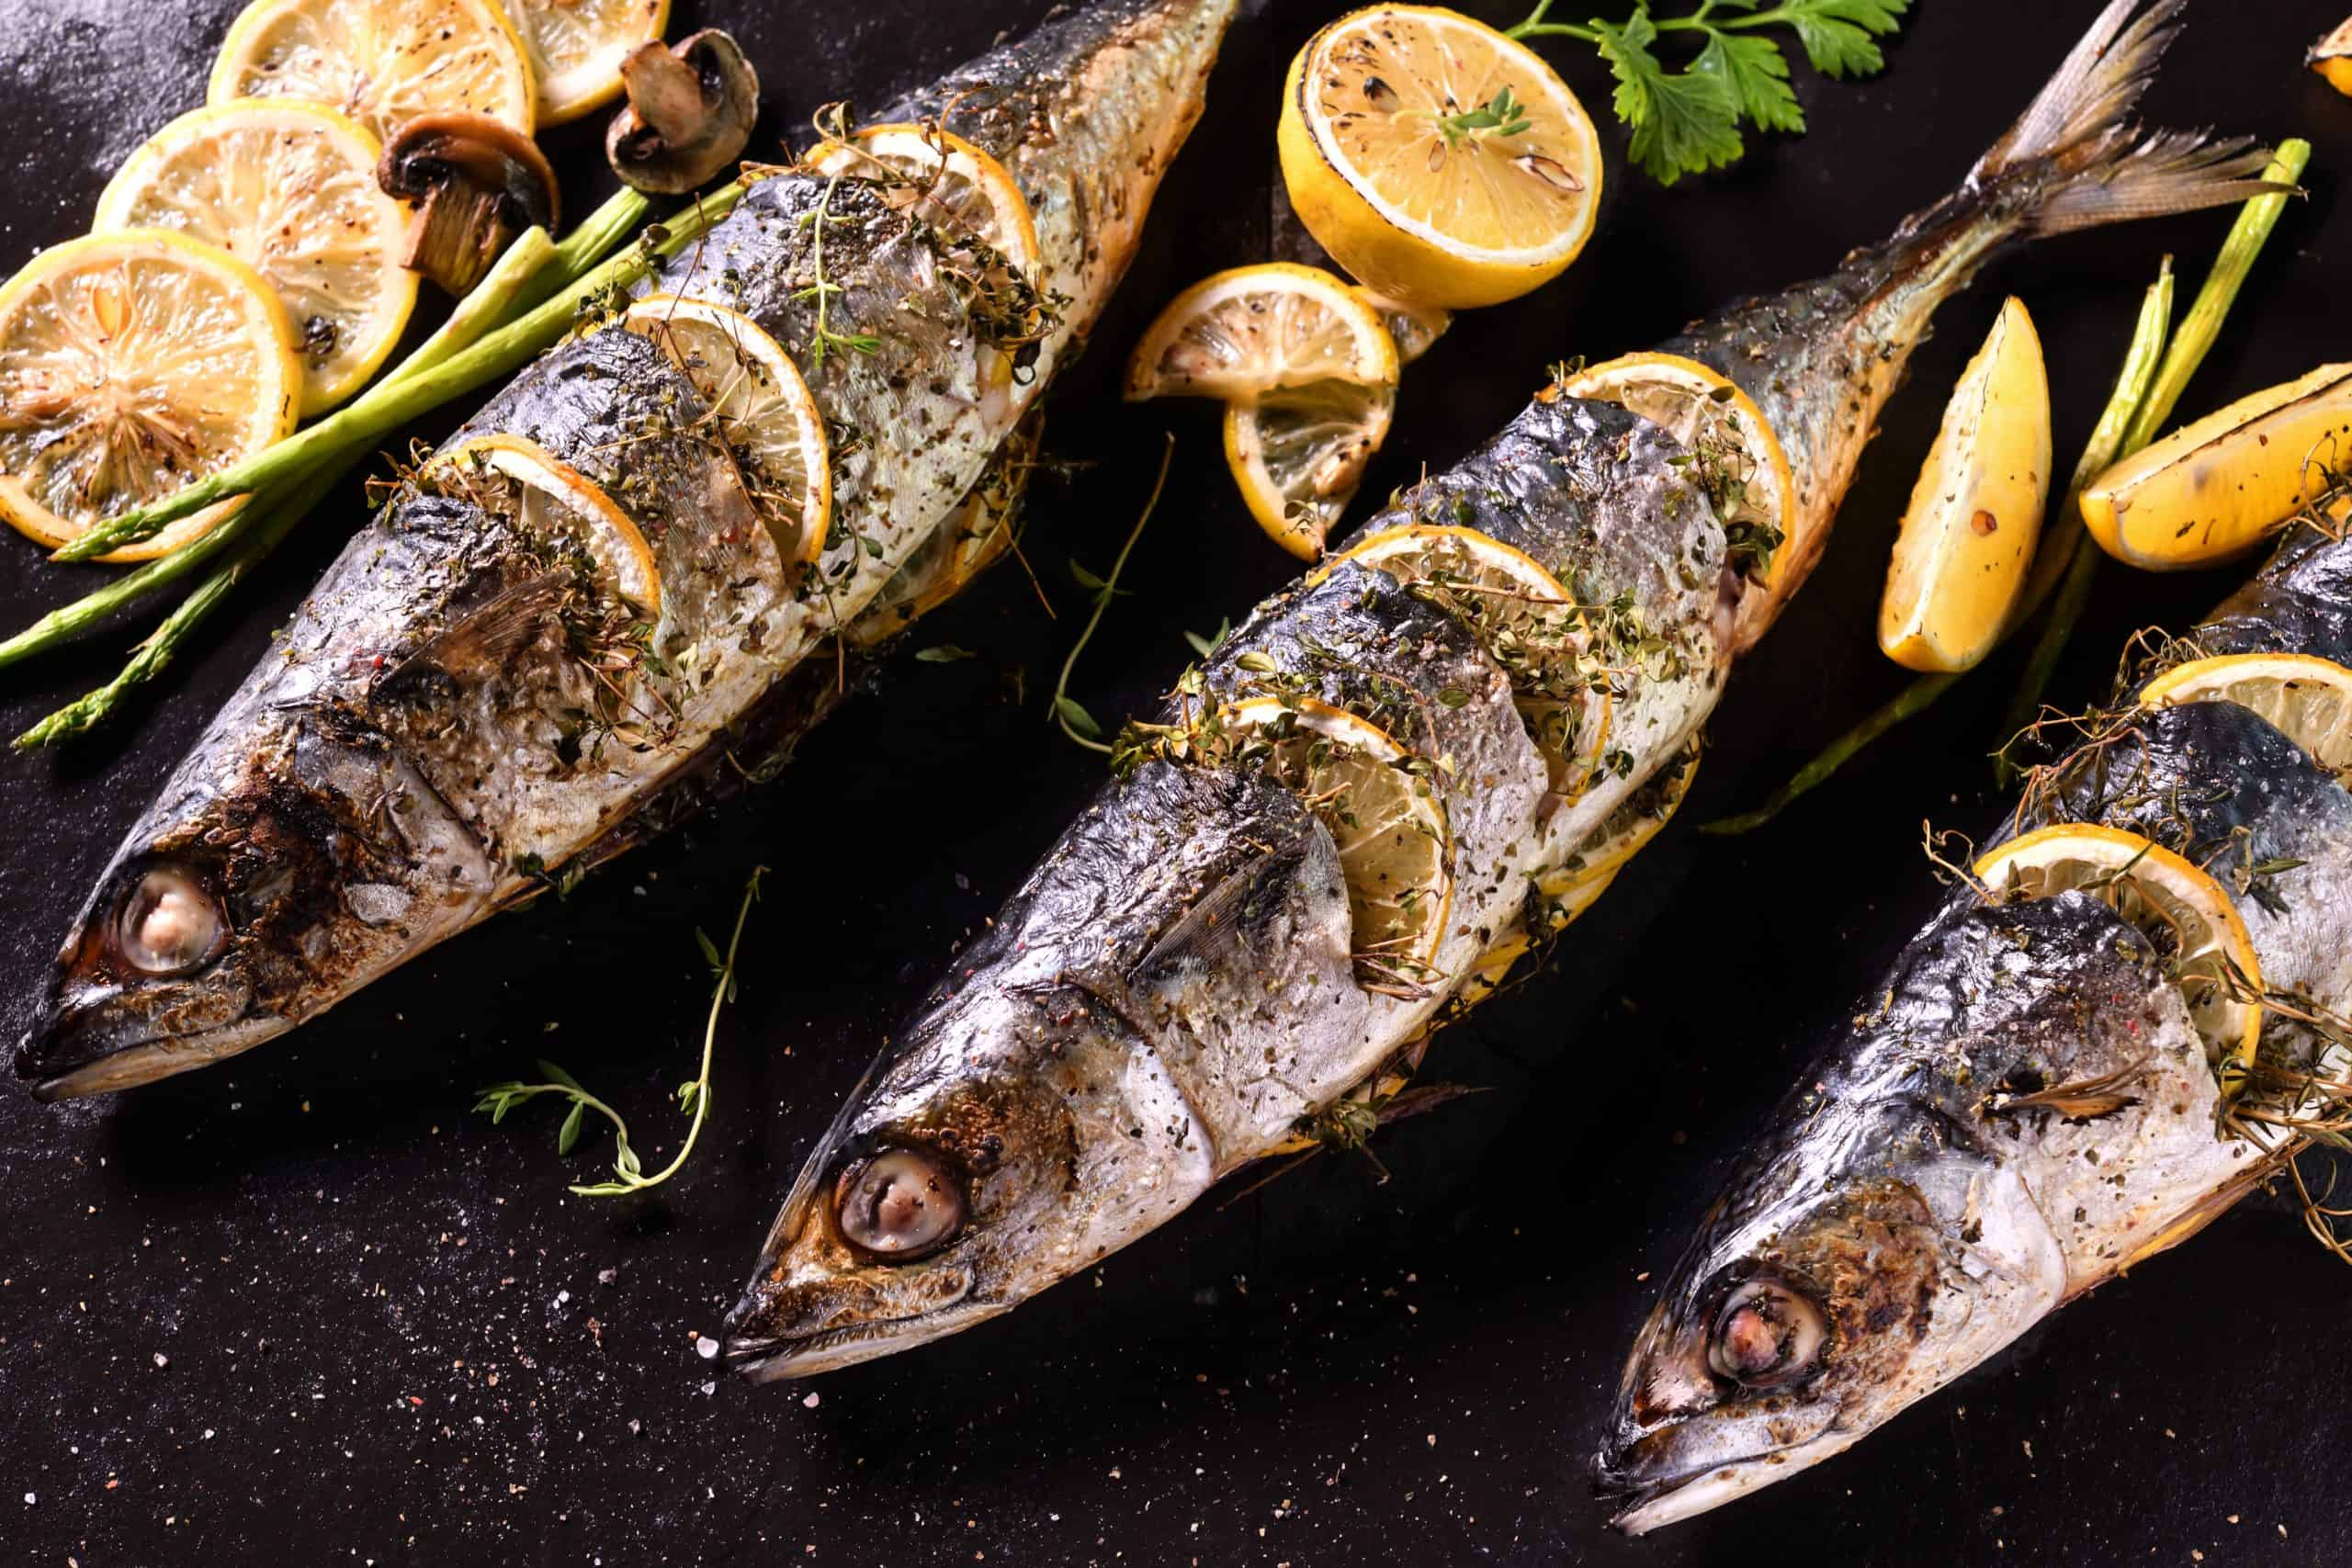 What You Need to Know About the Effects of Grilling and Frying on Fish